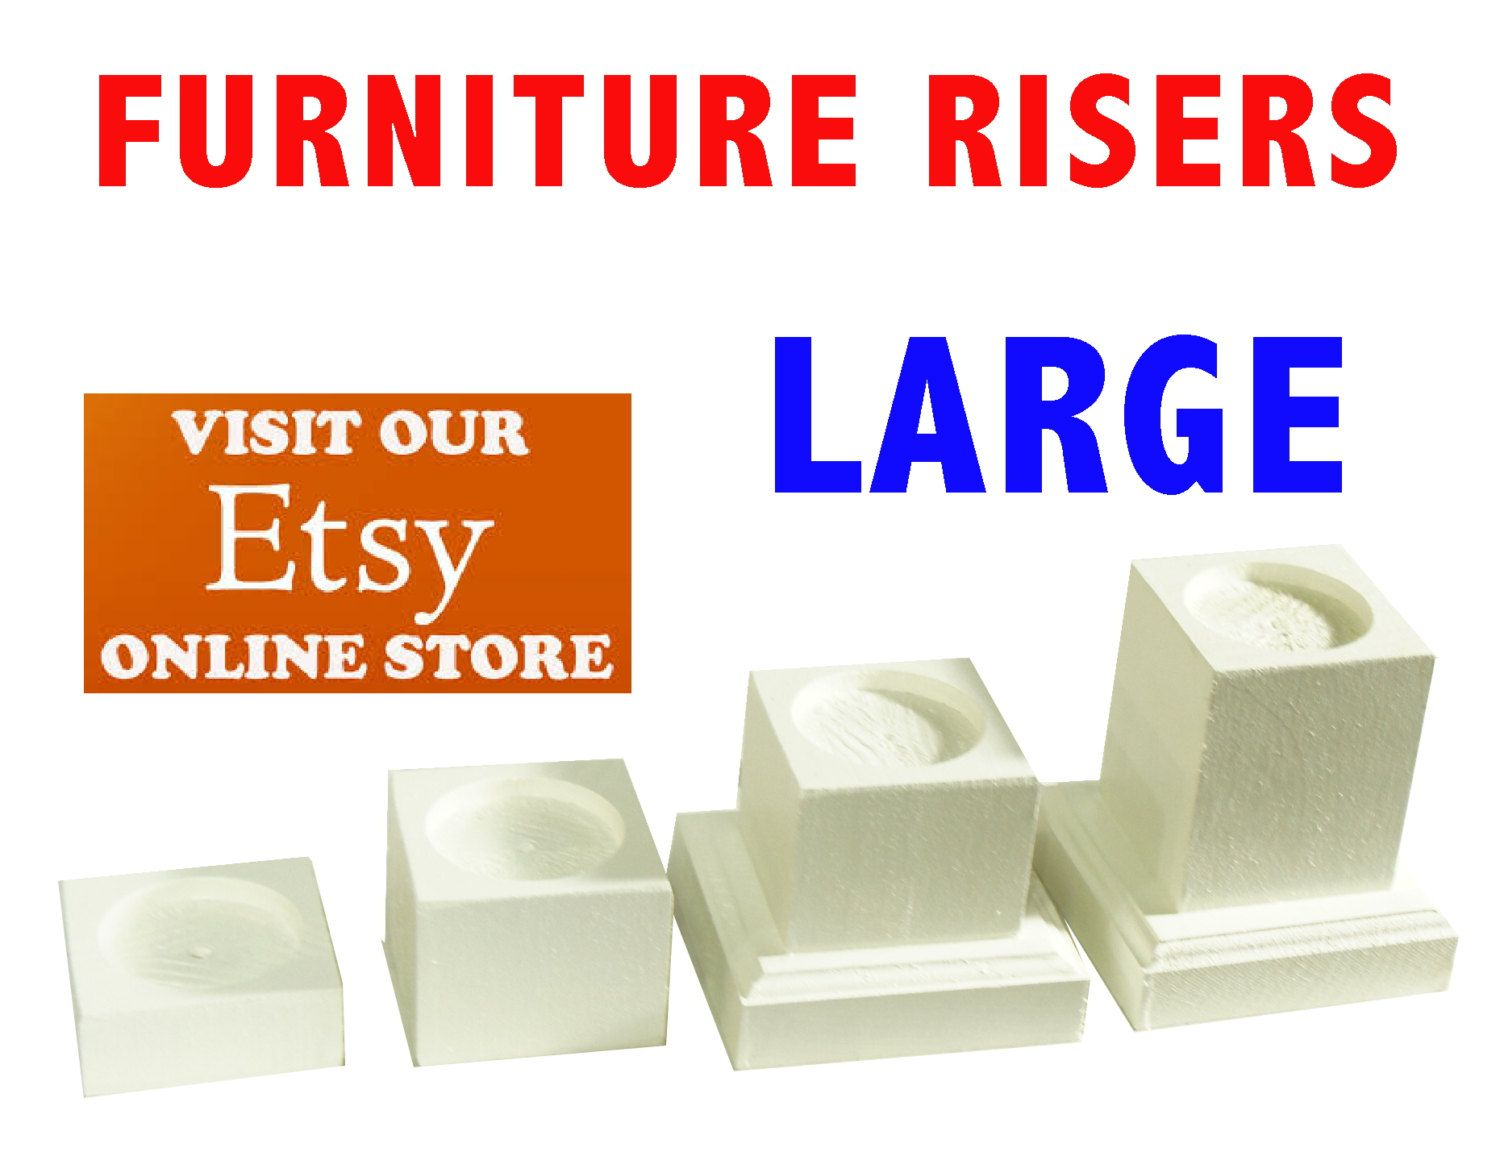 Large Furniture Risers Bed Lifters By Furnitureriserscom On Etsy